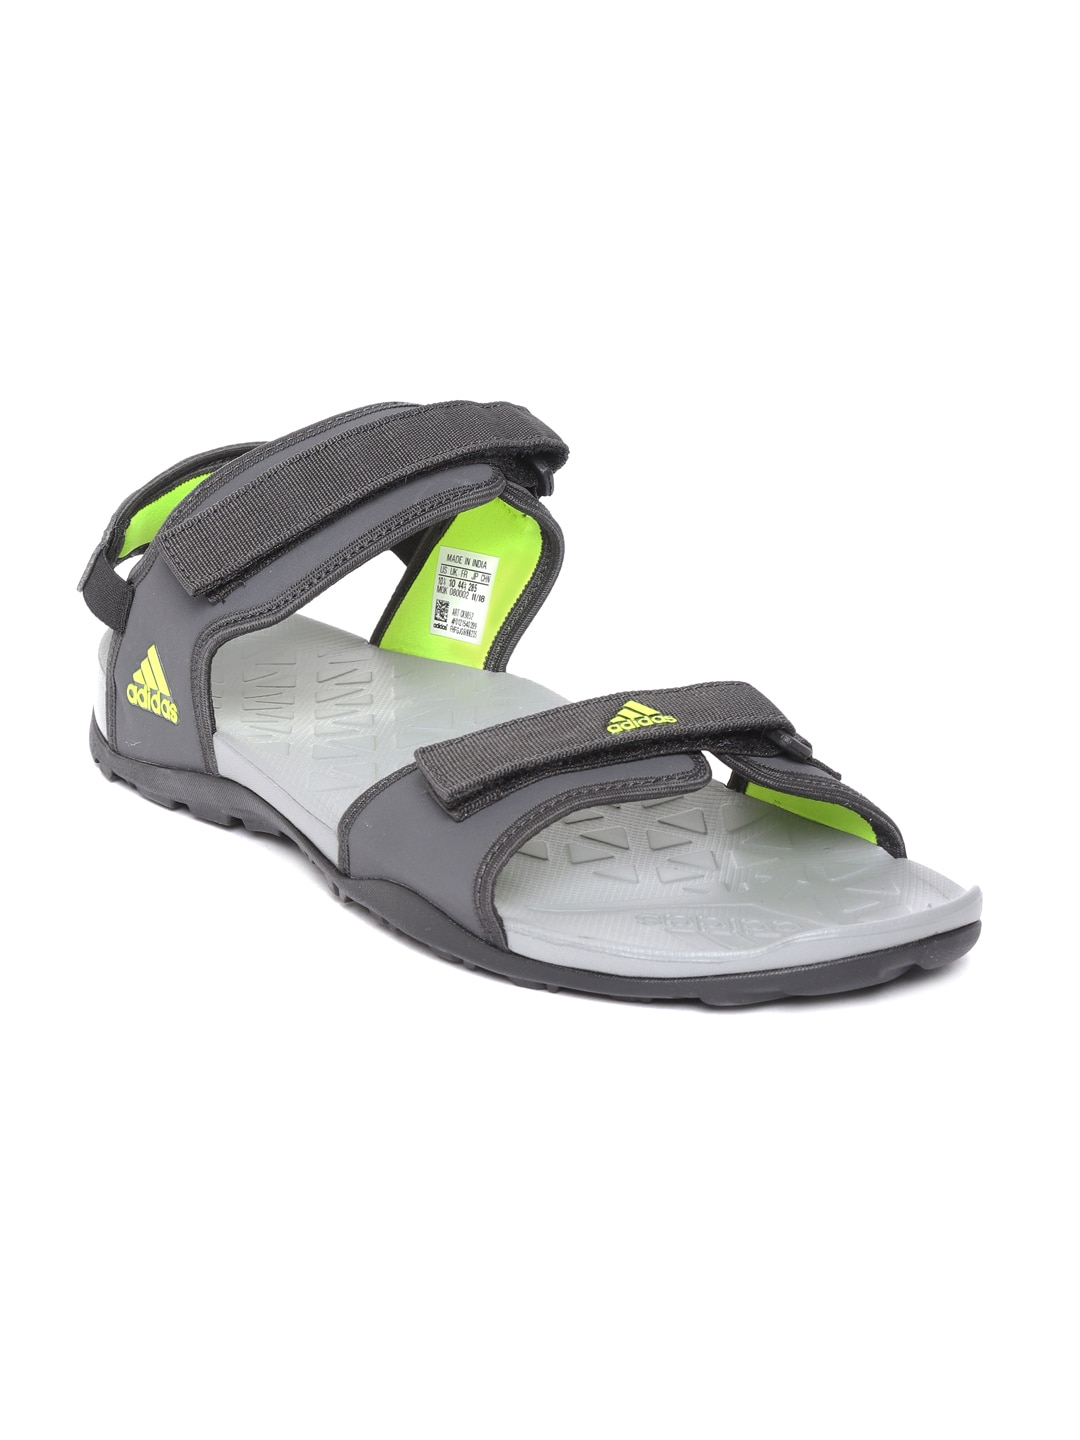 e5e340d0bcd Sandals For Men - Buy Men Sandals Online in India